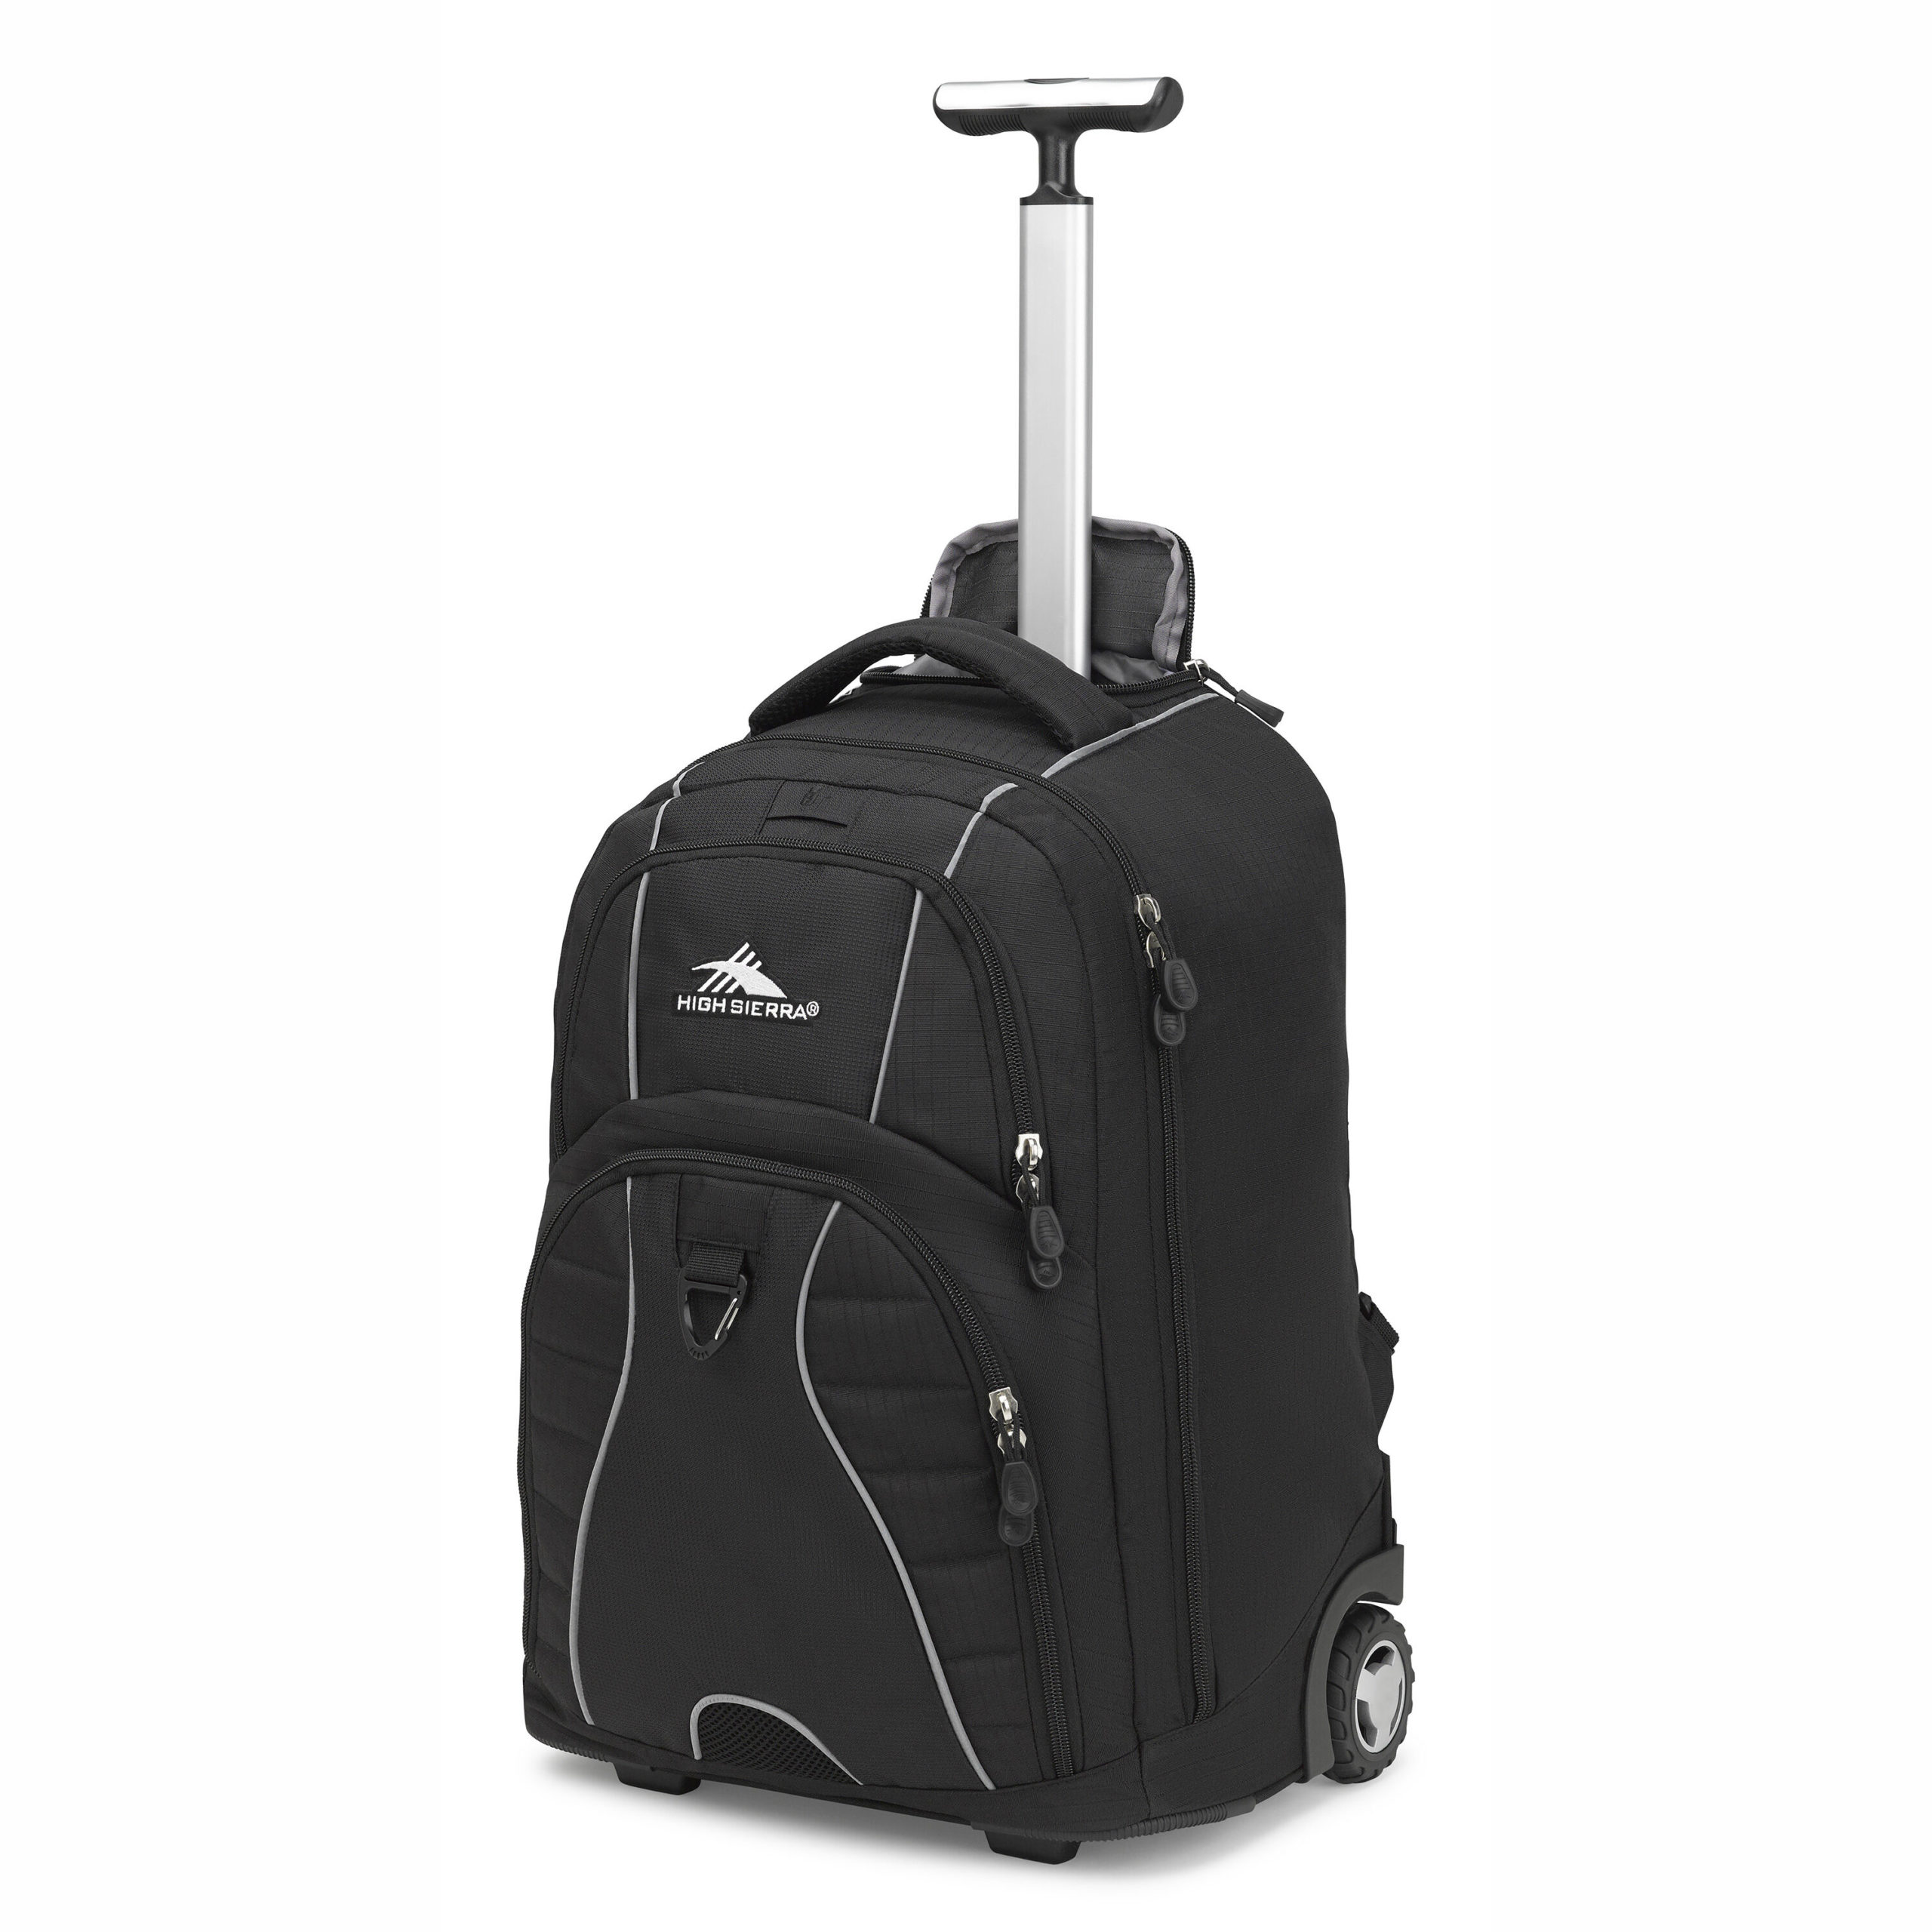 High Sierra Freewheel Wheeled Laptop Backpack, Great for High School, College Backpack, Rolling School Bag, Business Backpack, Travel Backpack, Carry-on Bag Perfect for Men and Women